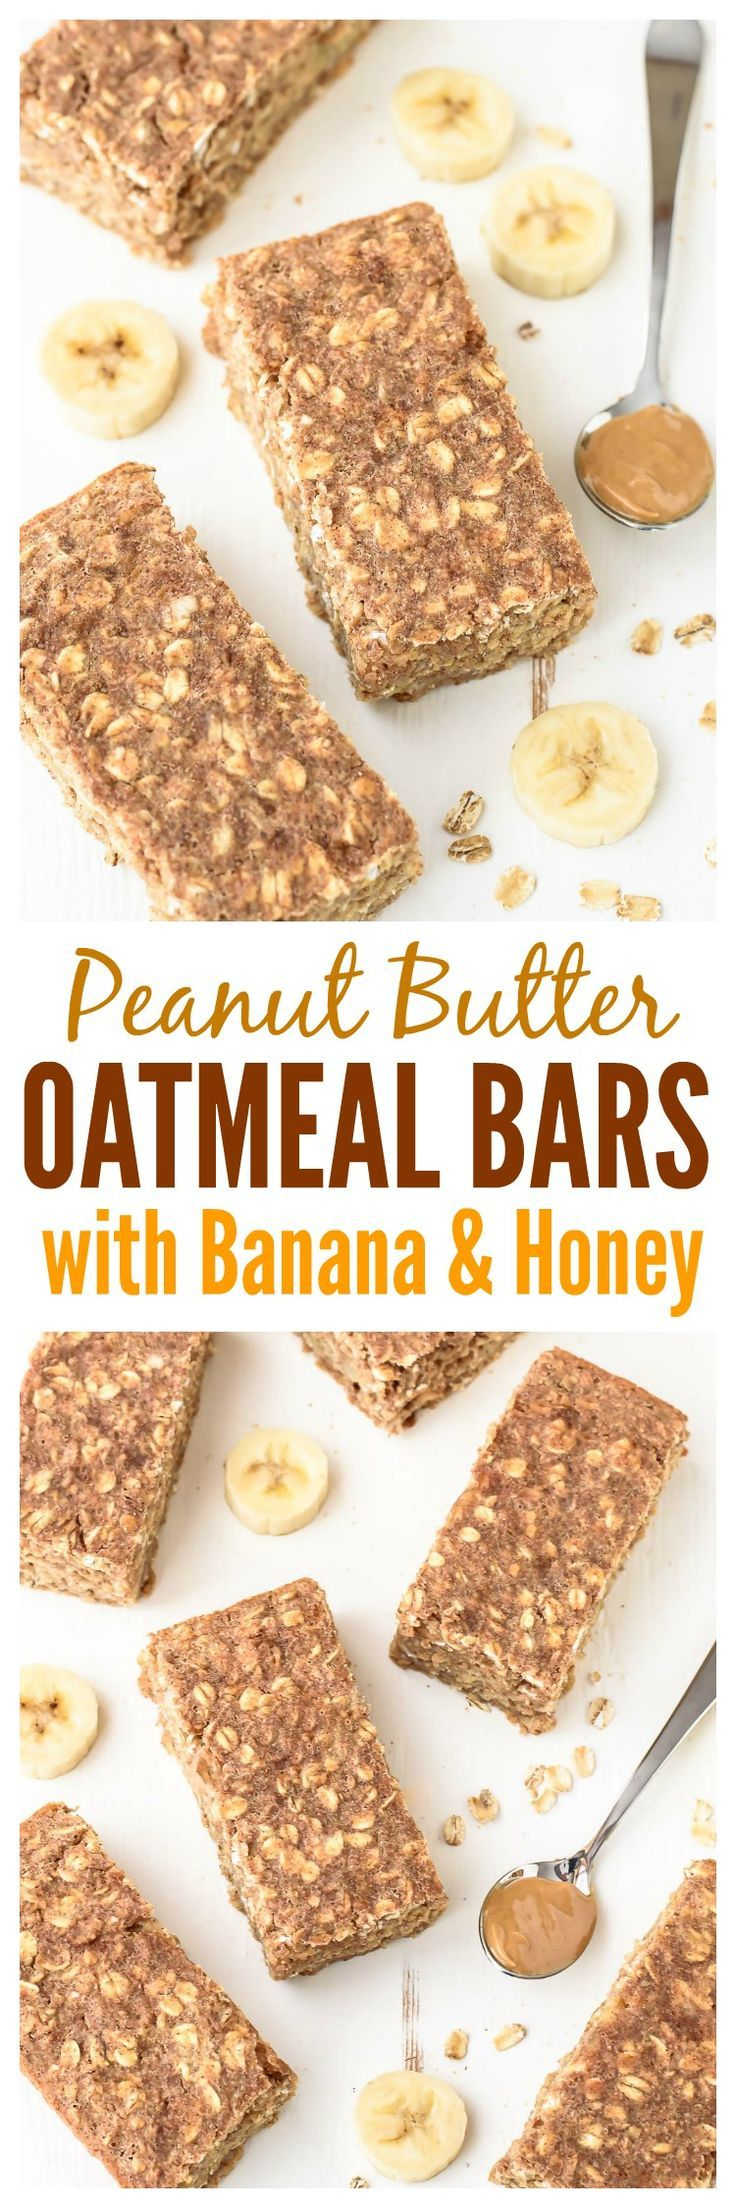 Peanut Butter Oatmeal Breakfast Bars with Banana and Honey. Healthy, filling, and absolutely delicious! www.wellplated.com (Paleo Chocolate Peanut Butter)